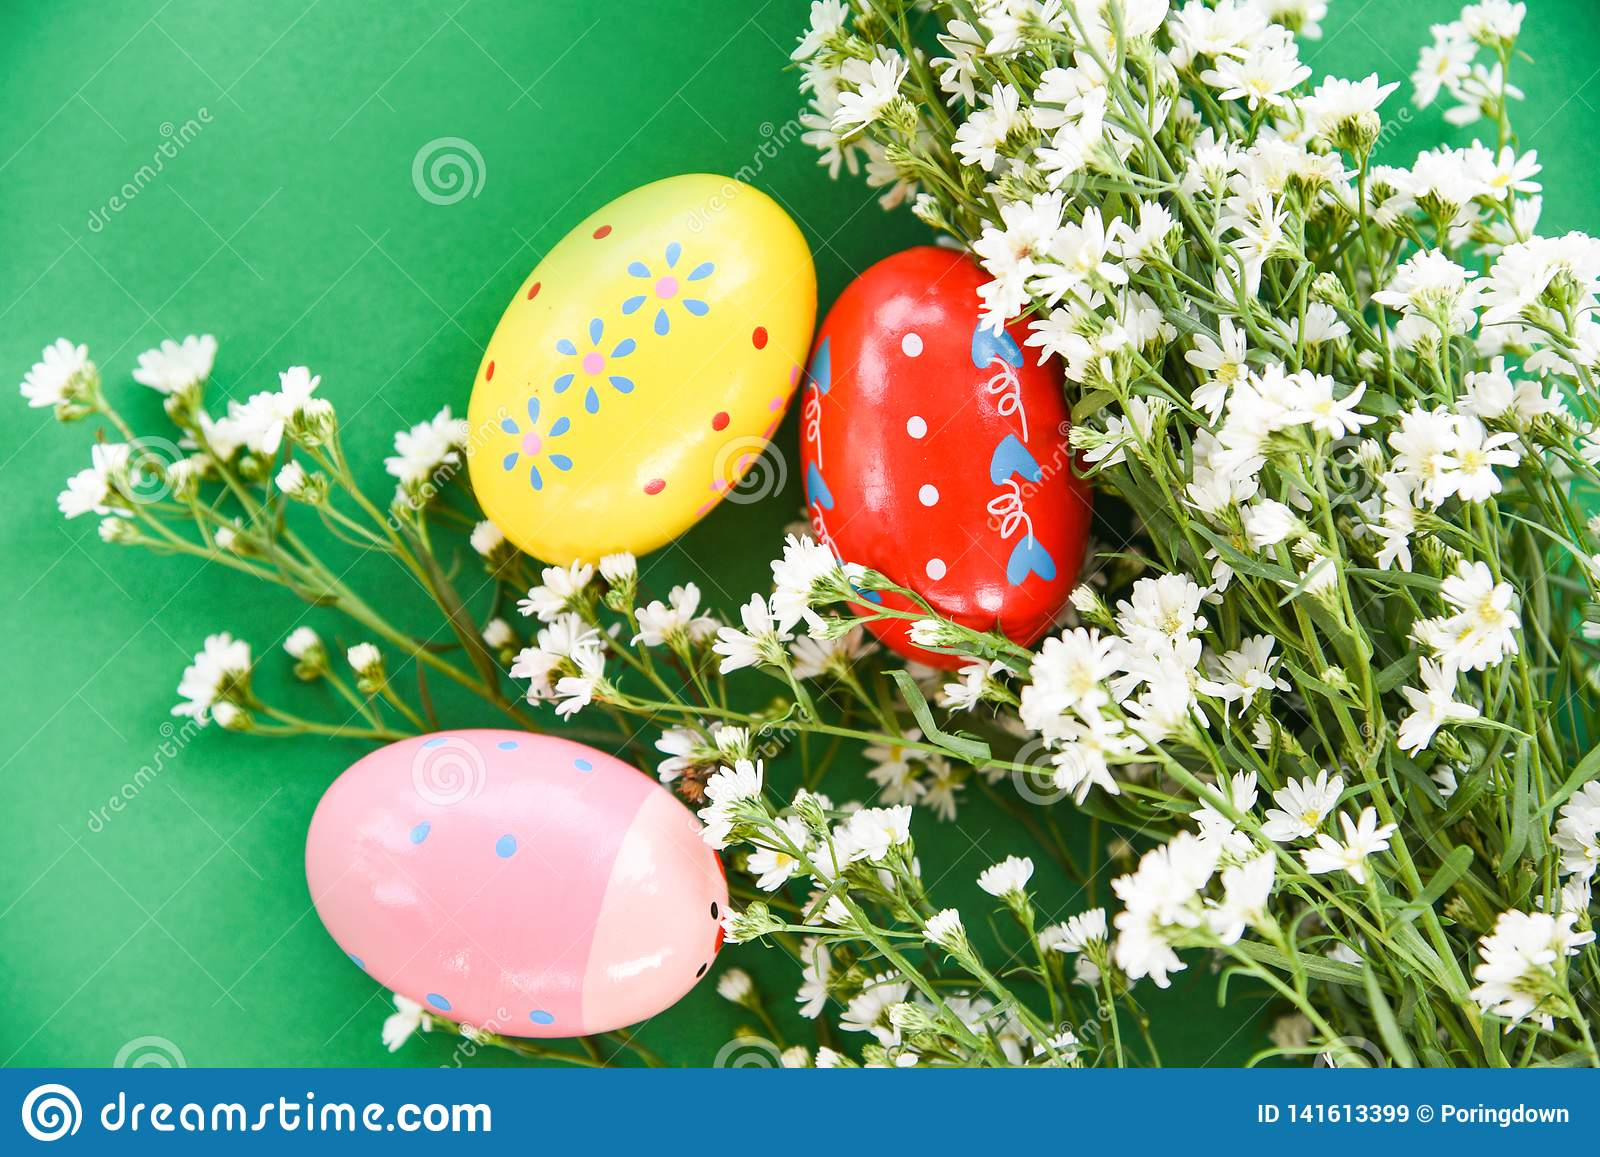 Easter eggs decoration white cutter flower on green background